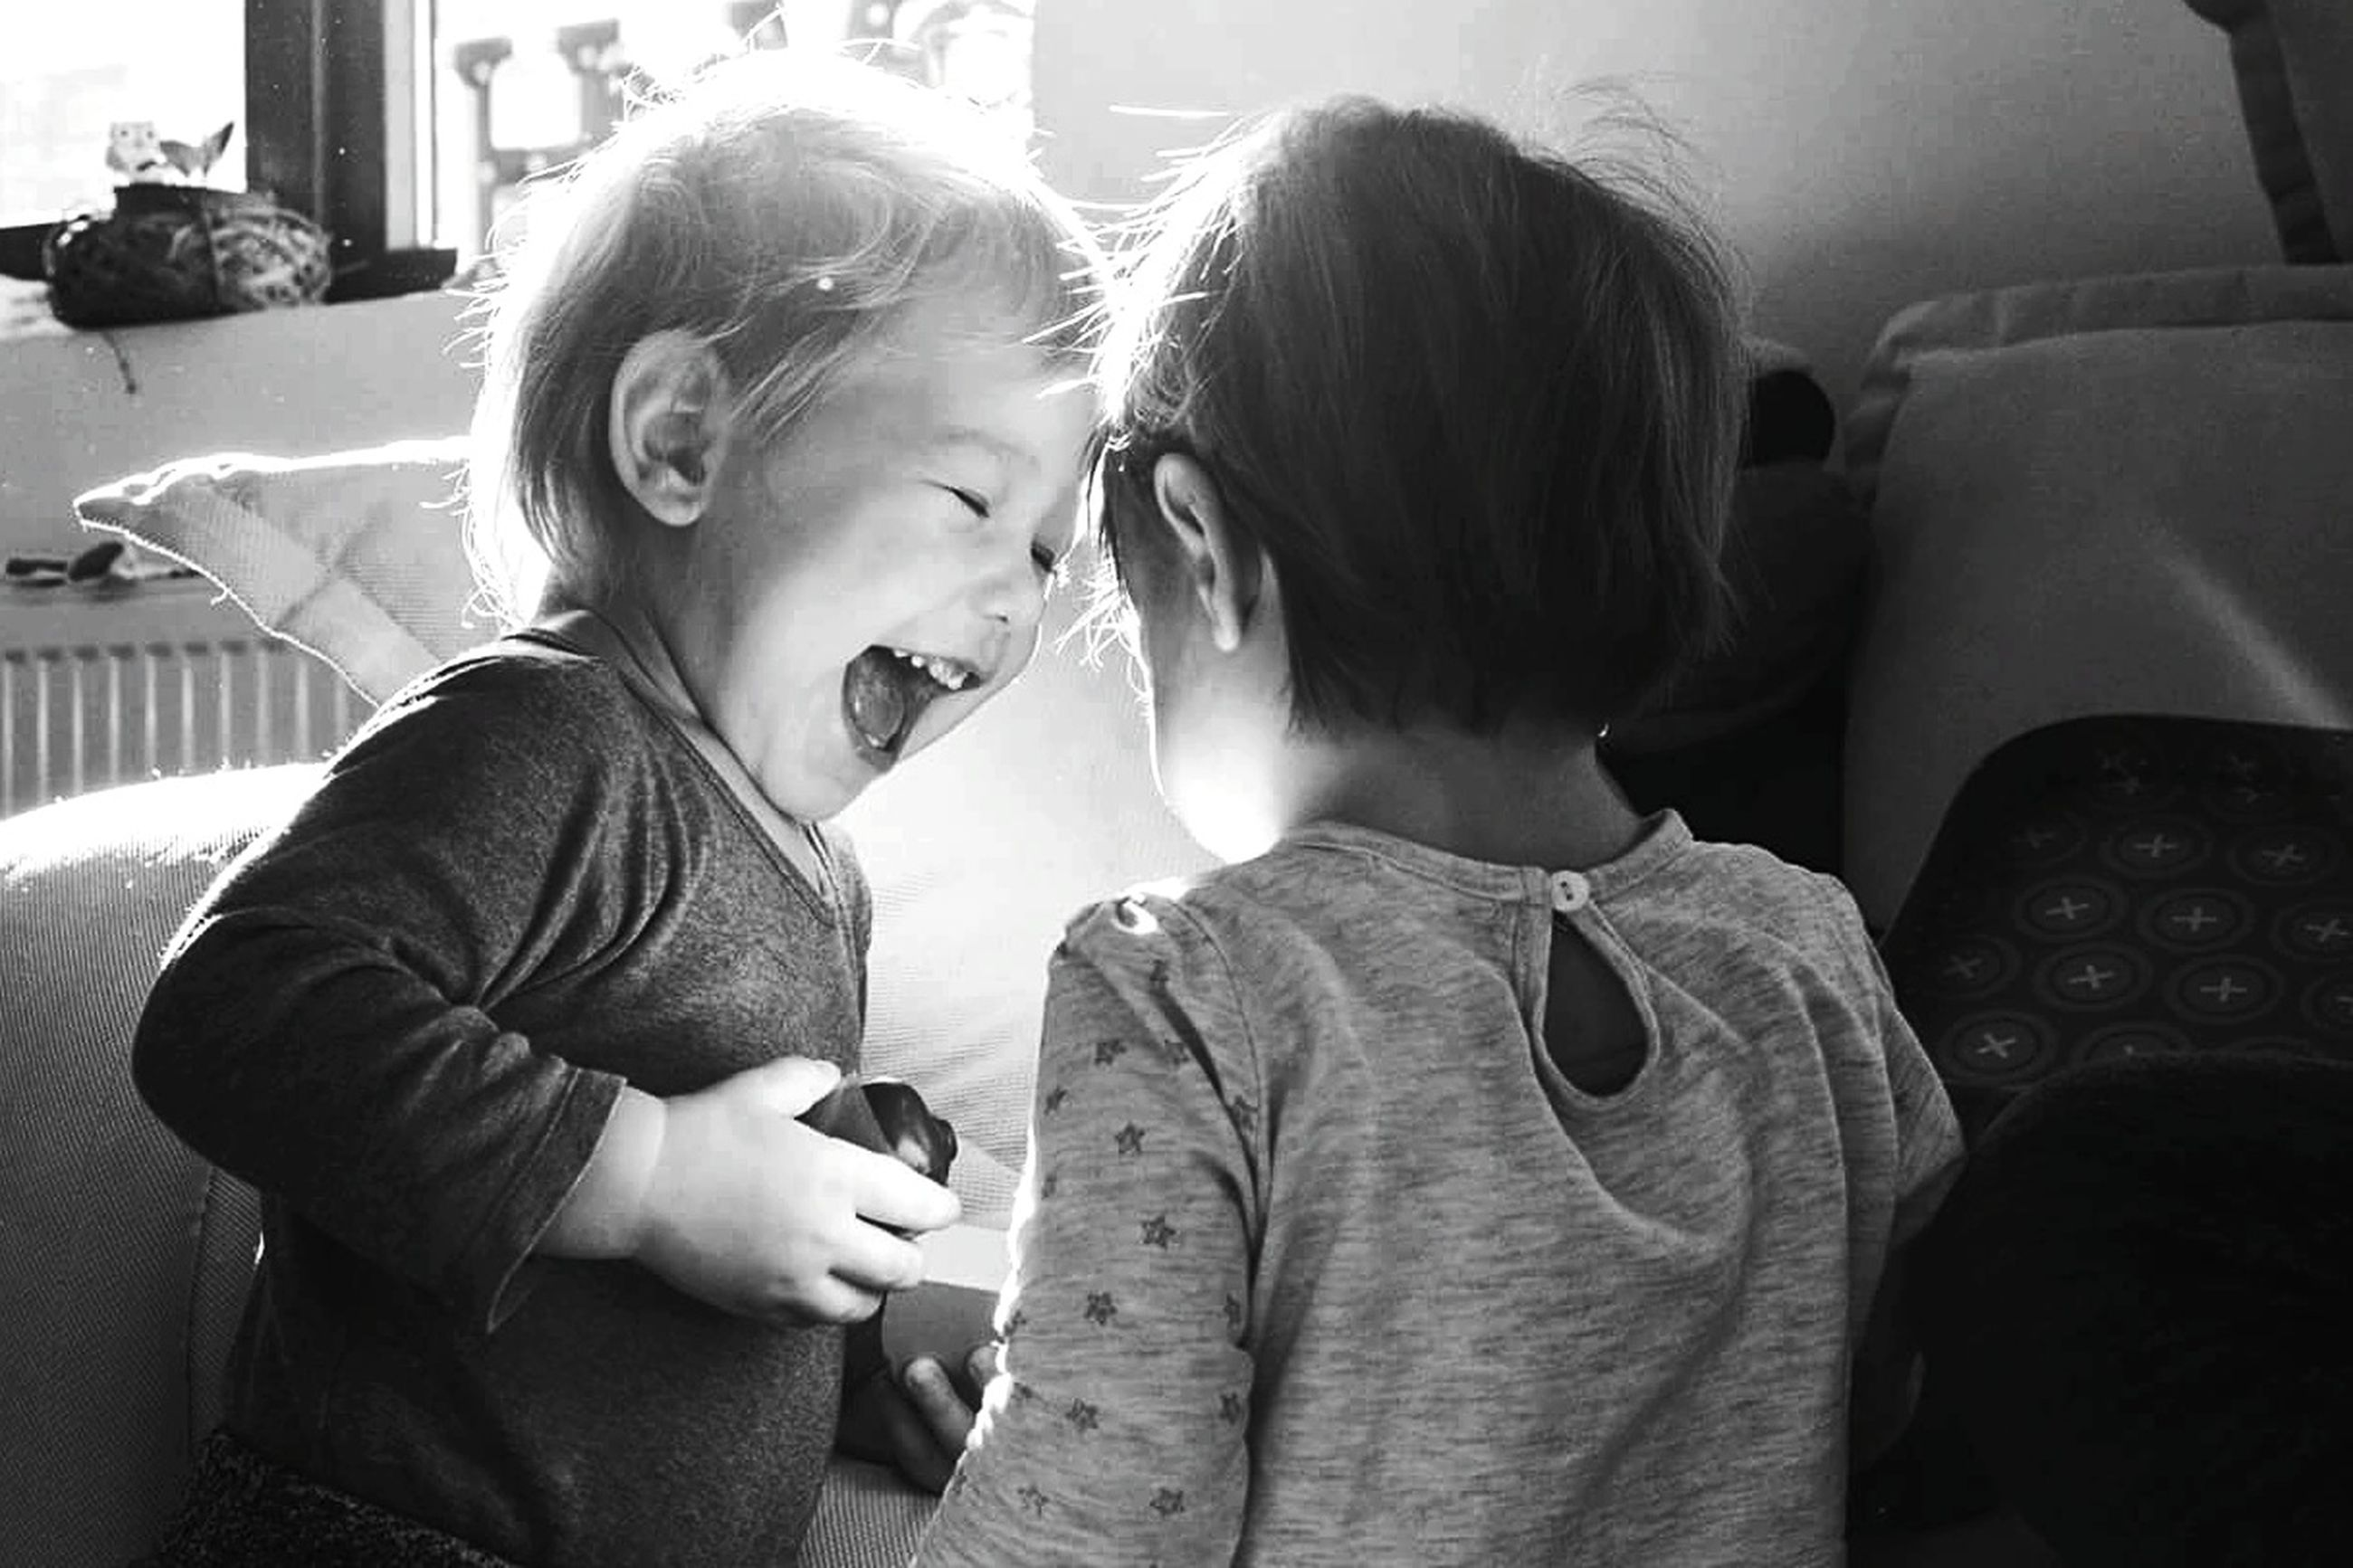 child, childhood, real people, family, togetherness, bonding, boys, two people, lifestyles, love, males, leisure activity, men, casual clothing, females, women, girls, positive emotion, son, innocence